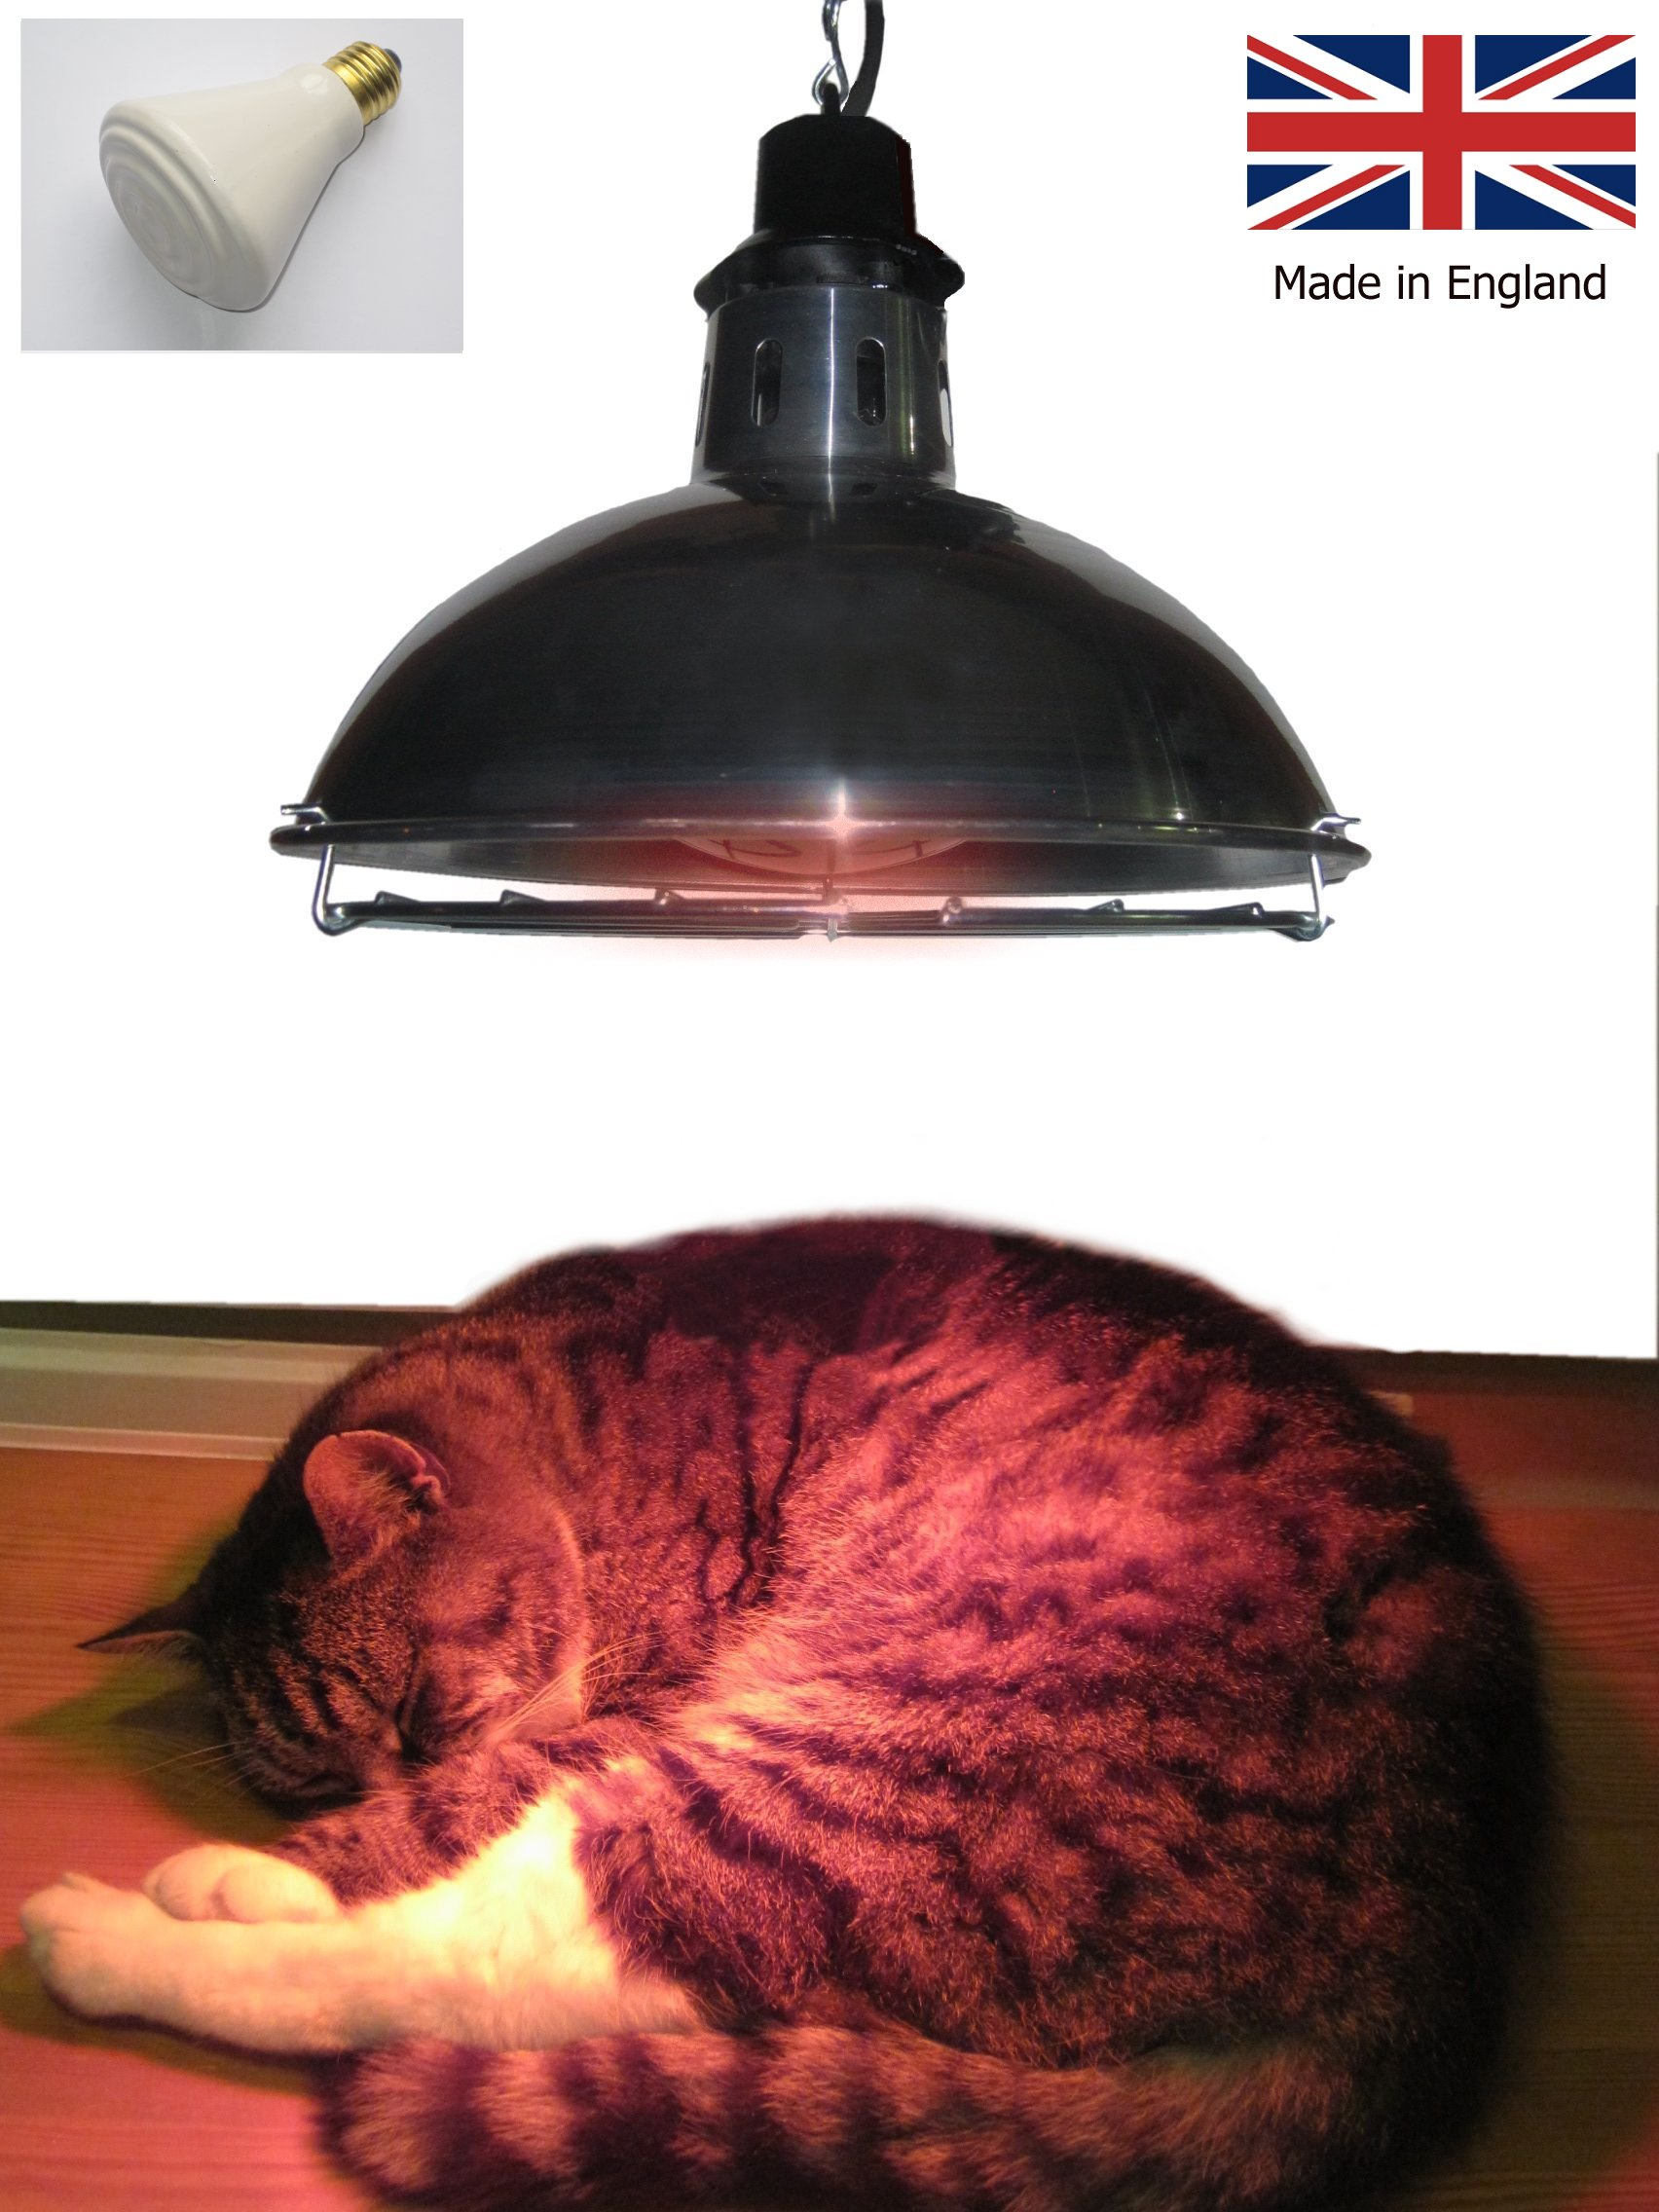 Leisure Heating Pet Heater with 250W Dull Emitter